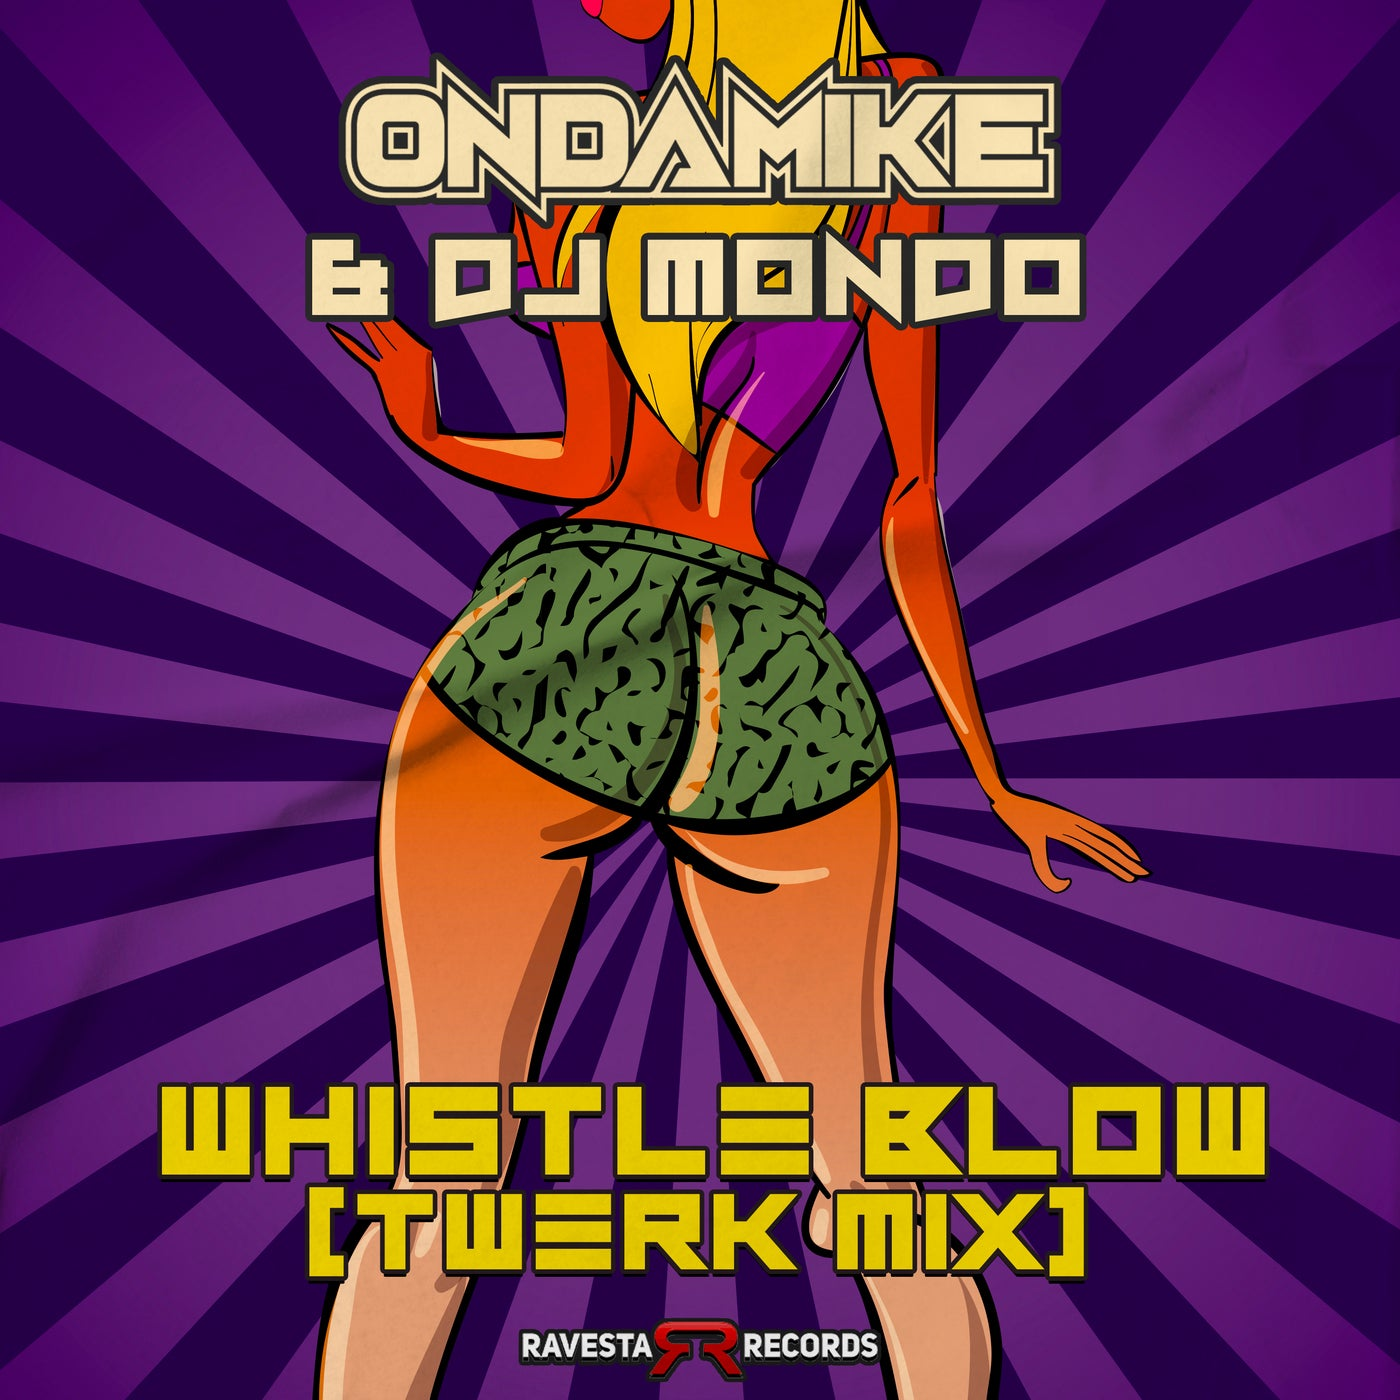 Whistle Blow (Twerk Mix)